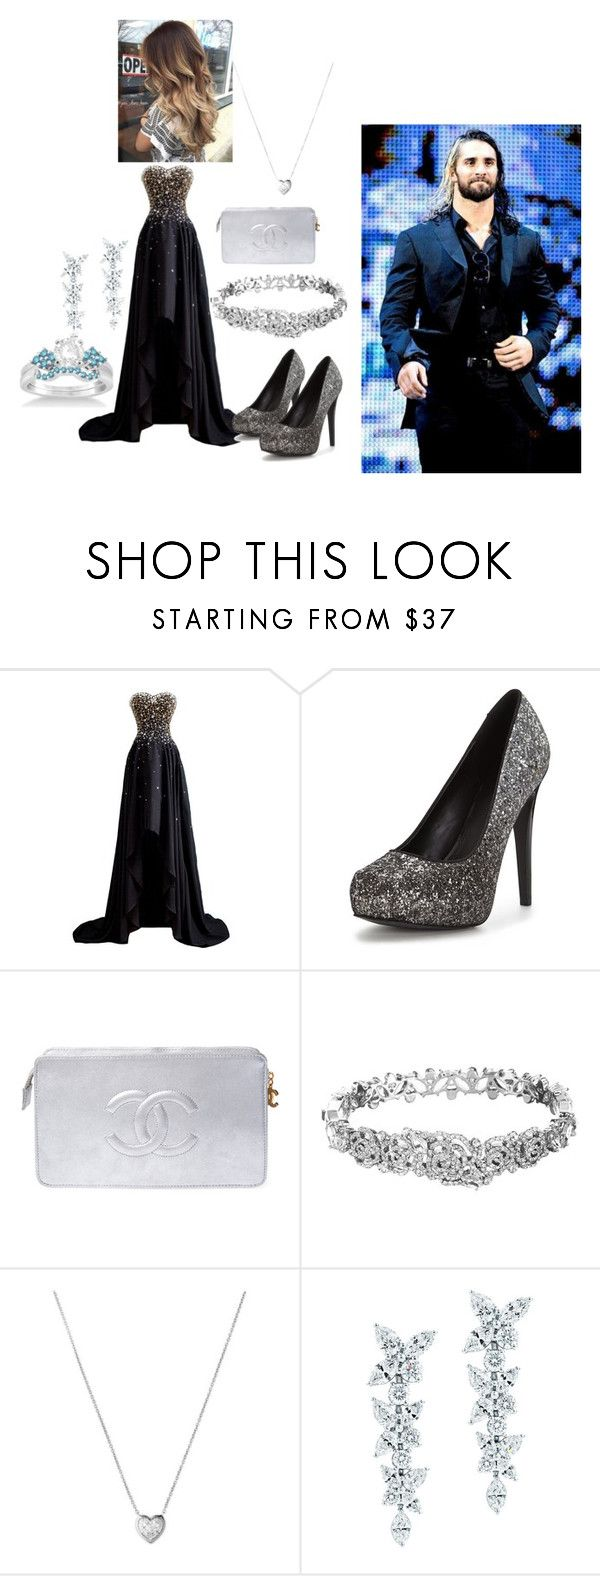 """Wrestlemania 33"" by kristina-kristy ❤ liked on Polyvore featuring beauty, Chanel, Kate Spade, Links of London, Tiffany & Co., Allurez and mmm"